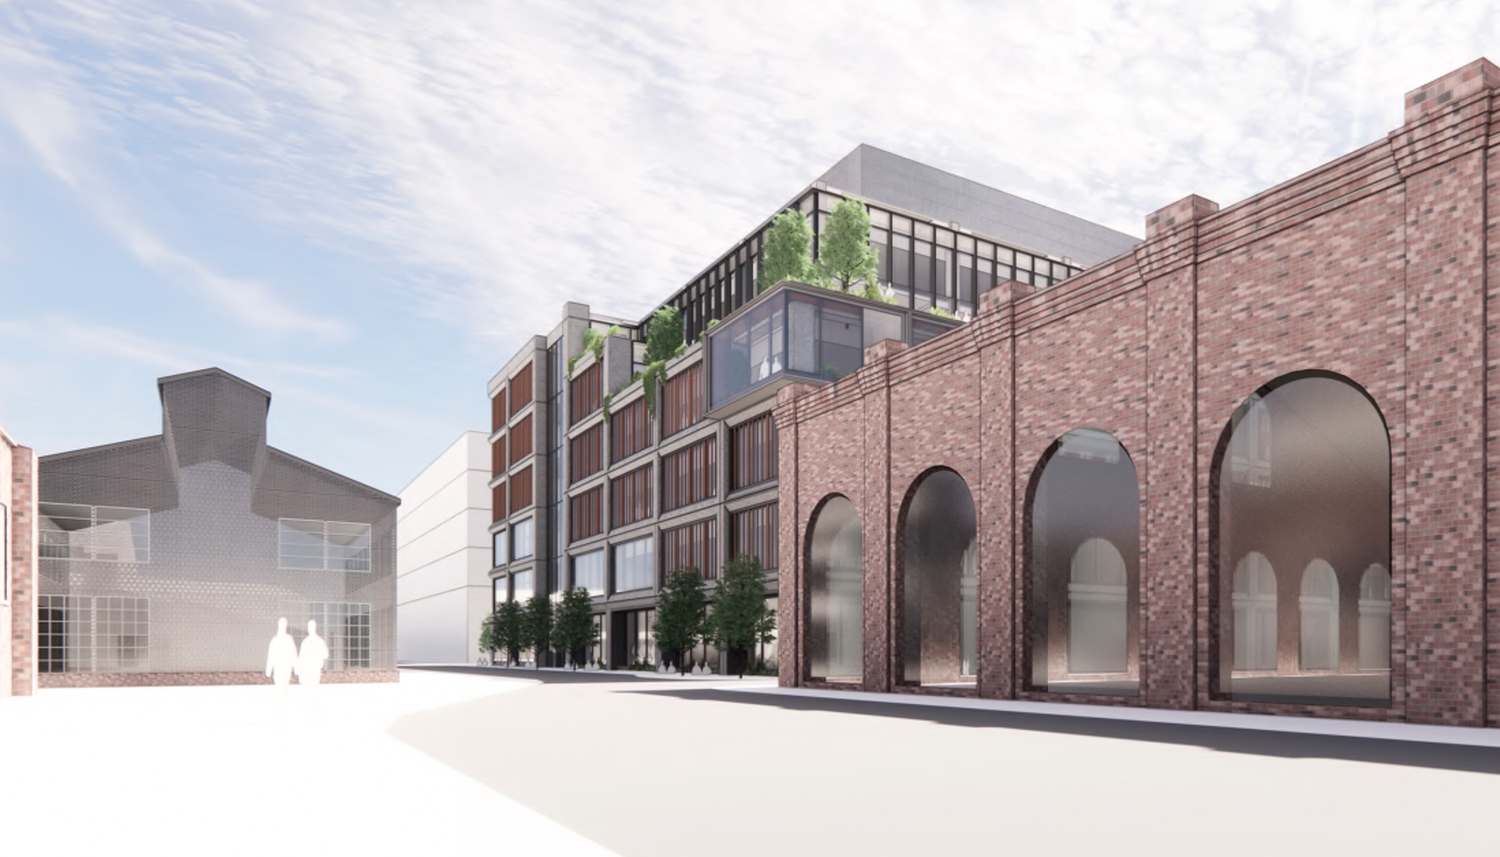 Pier 70's Parcel A at 88 Maryland Street viewed from 20th Street, design by DES and Grimshaw